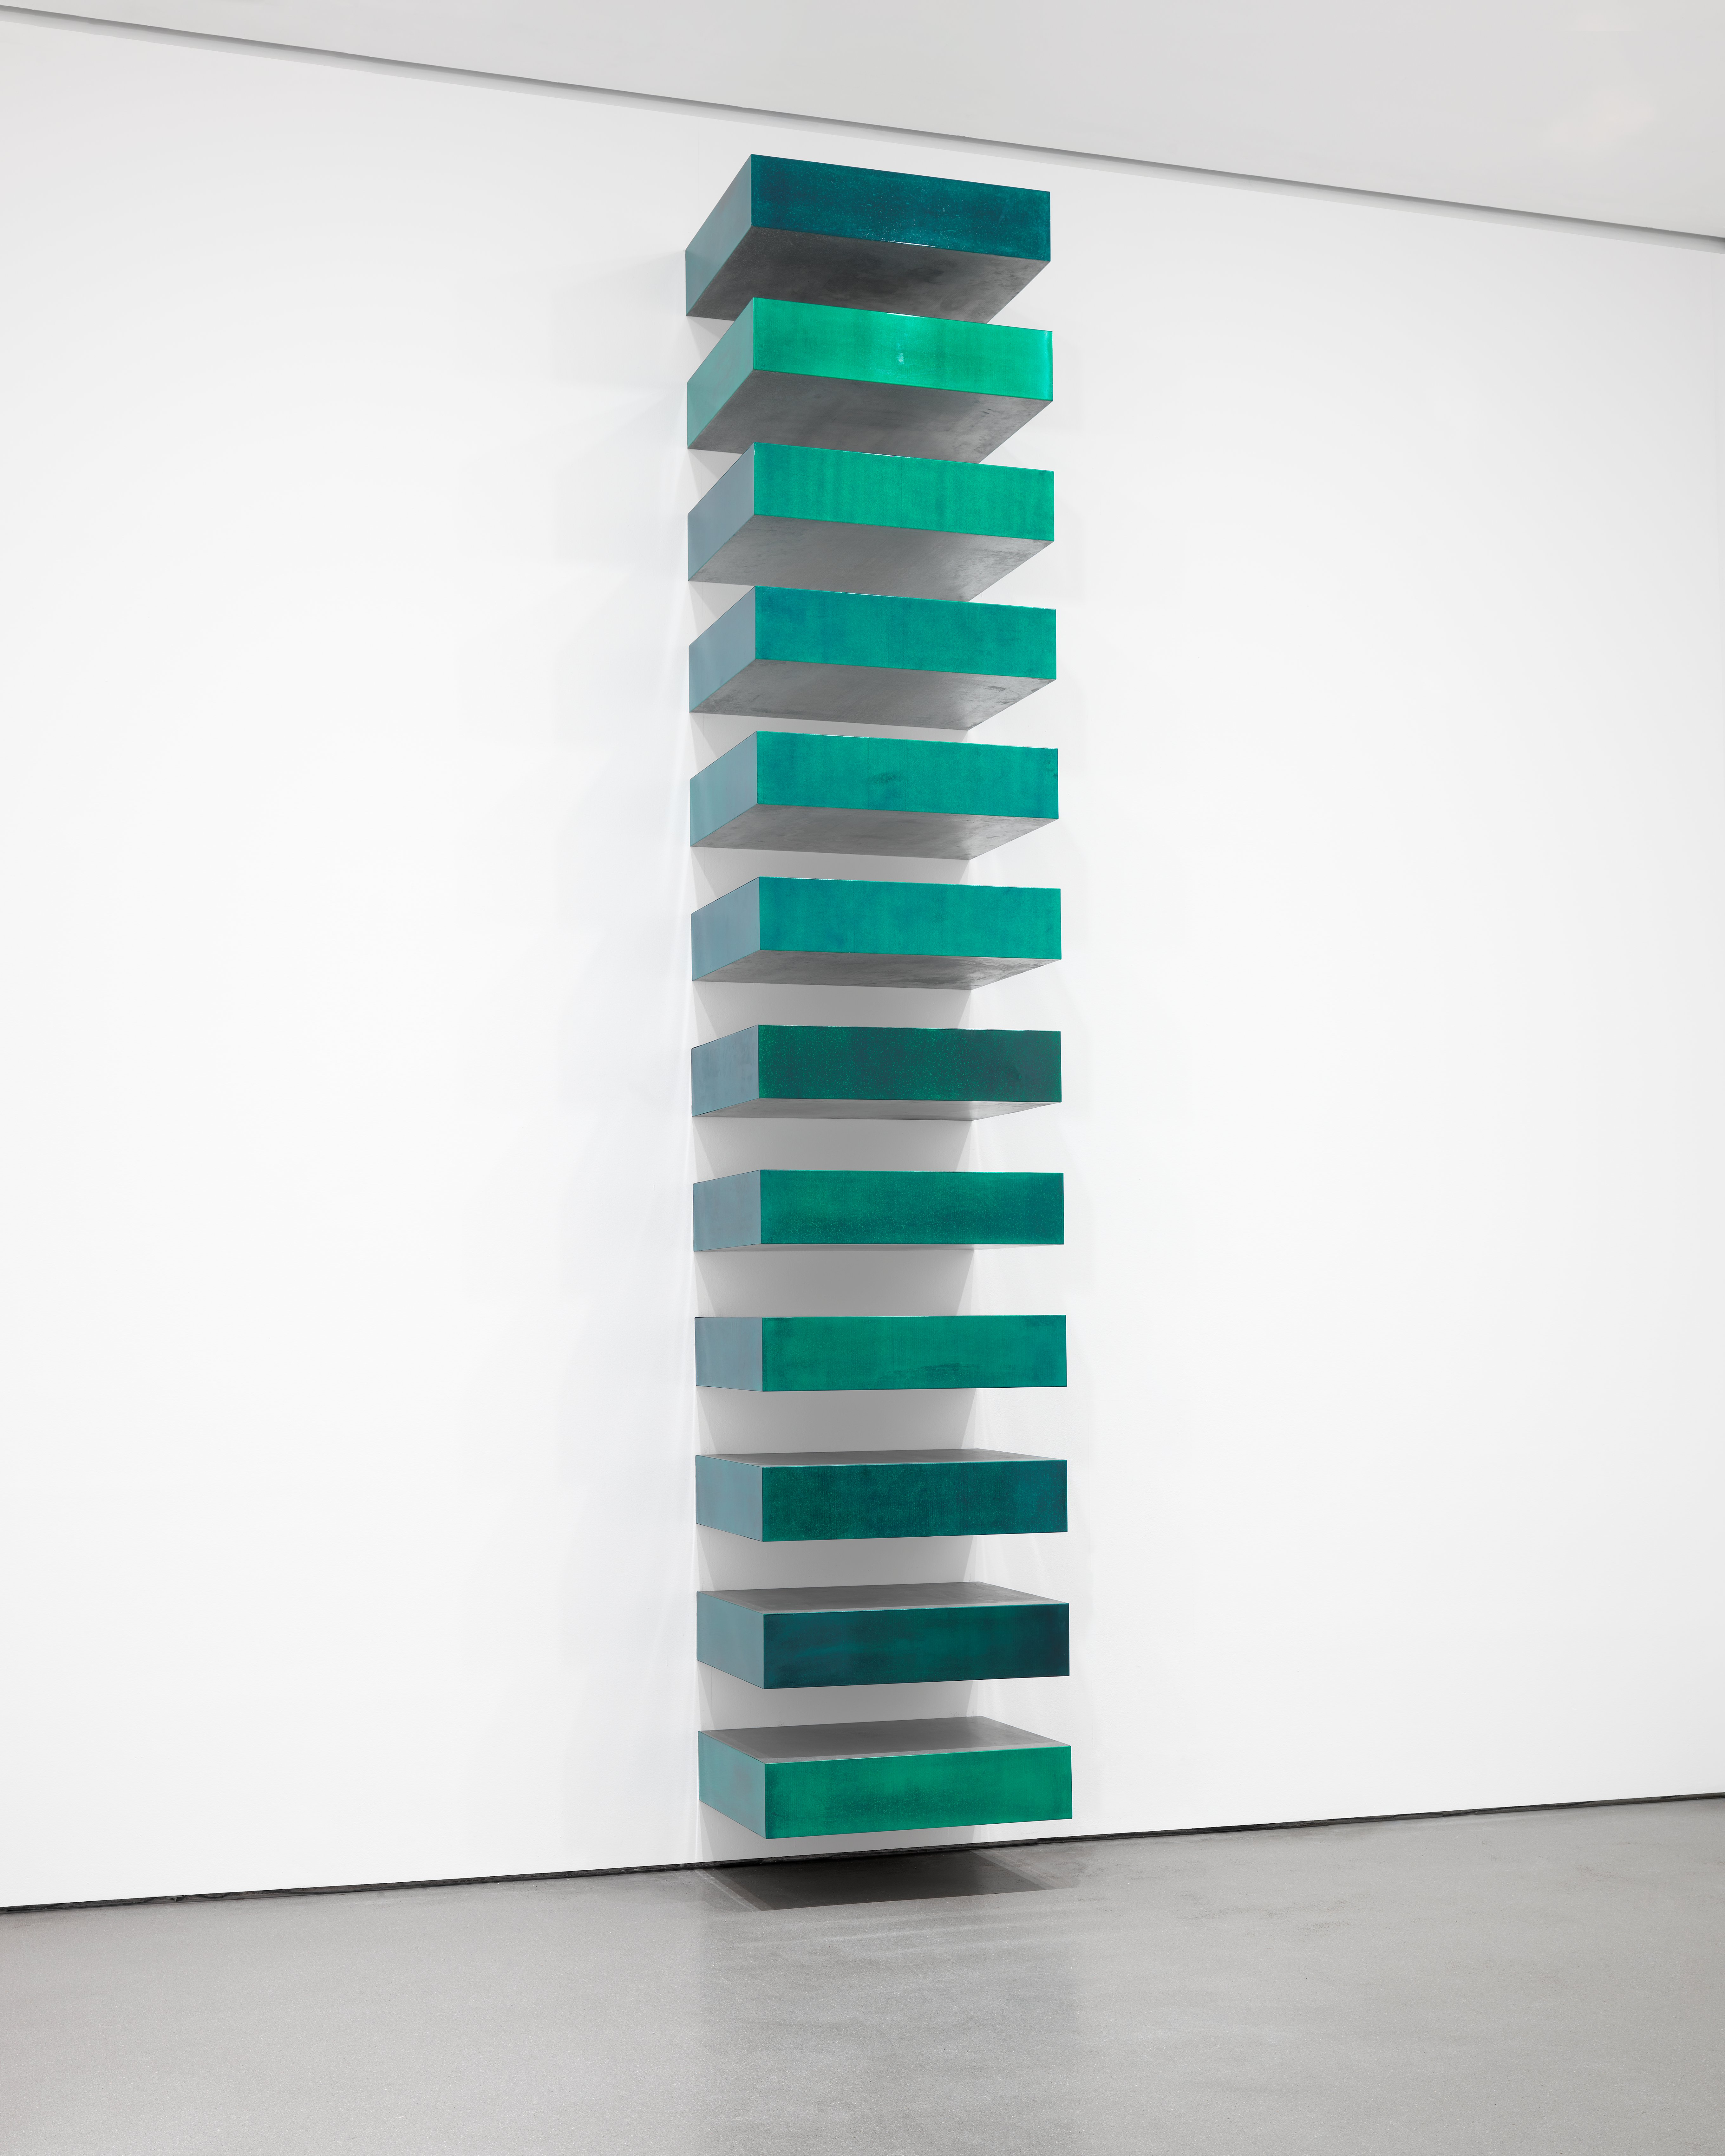 Donald Judd (American, 1928–1994). Untitled (Stack). 1967. Lacquer on galvanized iron, twelve units, each 9 x 40 x 31″ (22.8 x 101.6 x 78.7 cm), installed vertically with 9″ (22.8 cm) intervals. The Museum of Modern Art, NY. Helen Acheson Bequest (by exchange) and gift of Joseph Helman. © Judd Foundation, licensed by VAGA, New York